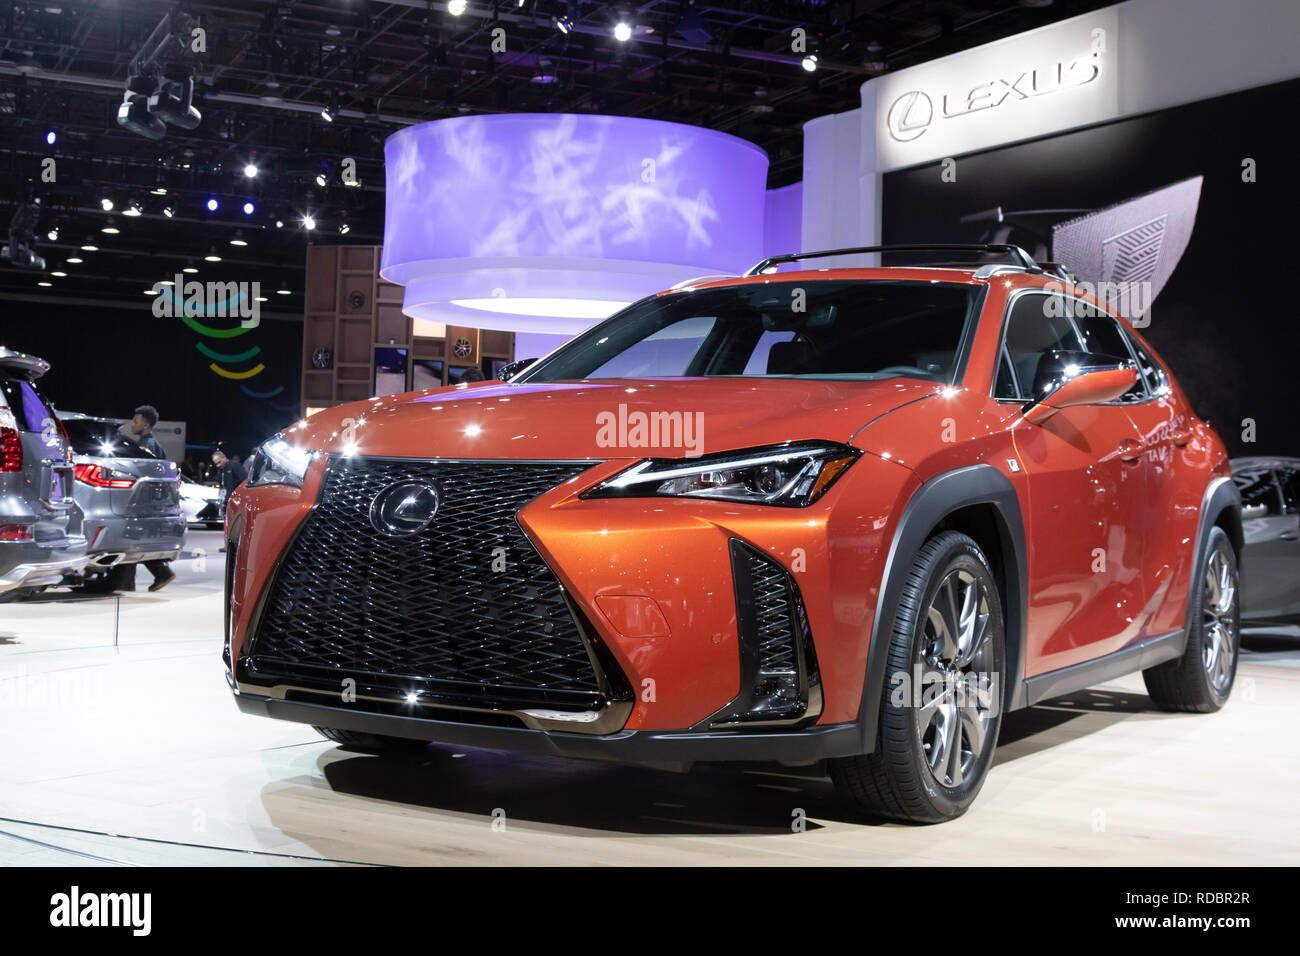 Detroit, Michigan - The Lexus UX small luixury SUV on display at the North American International Auto Show. The vehicle is available in both gas and  - Stock Image